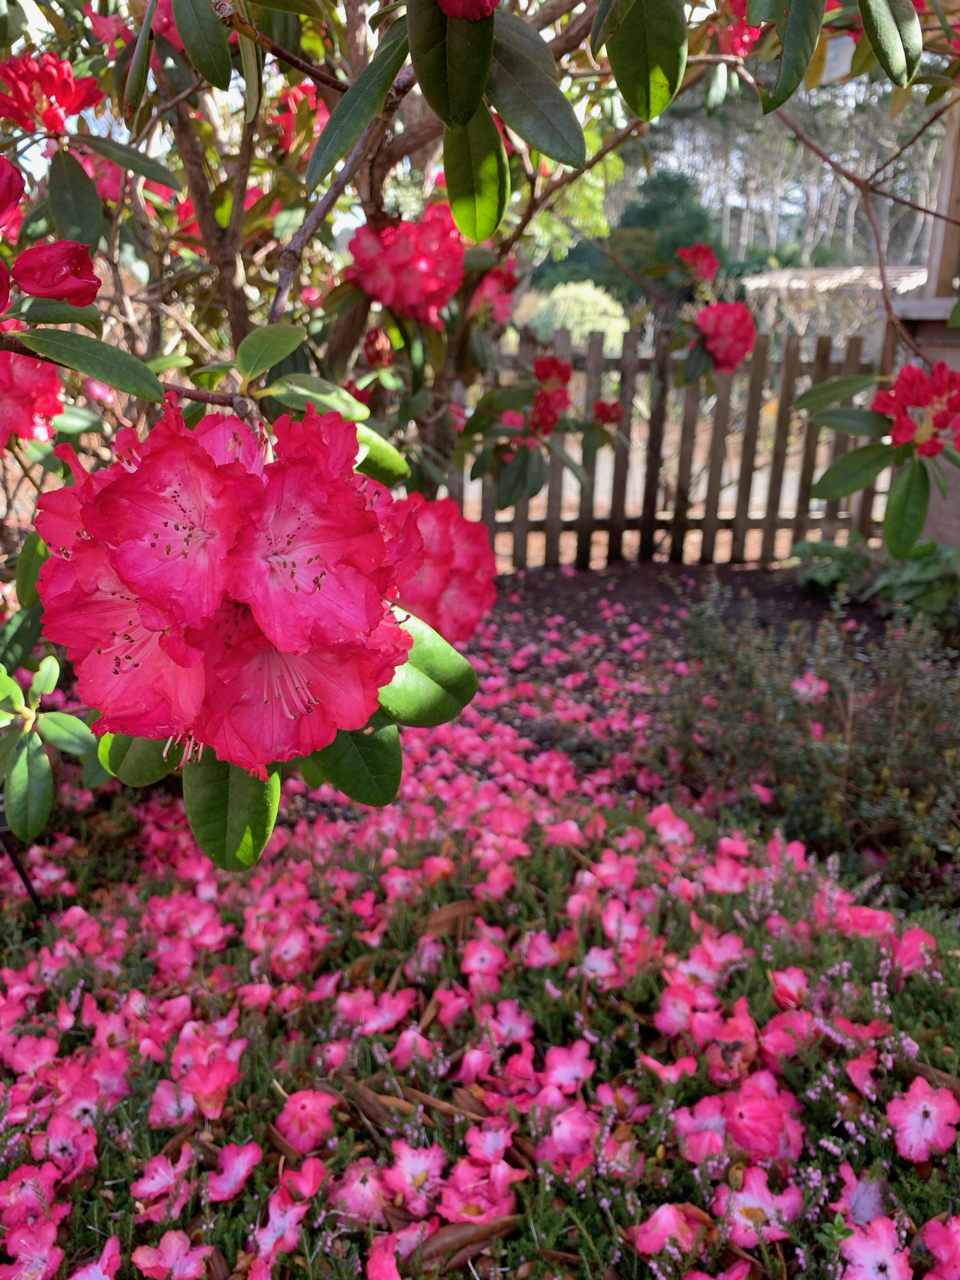 Botanical garden rhododendron and colorful ground cover. Photo by me.